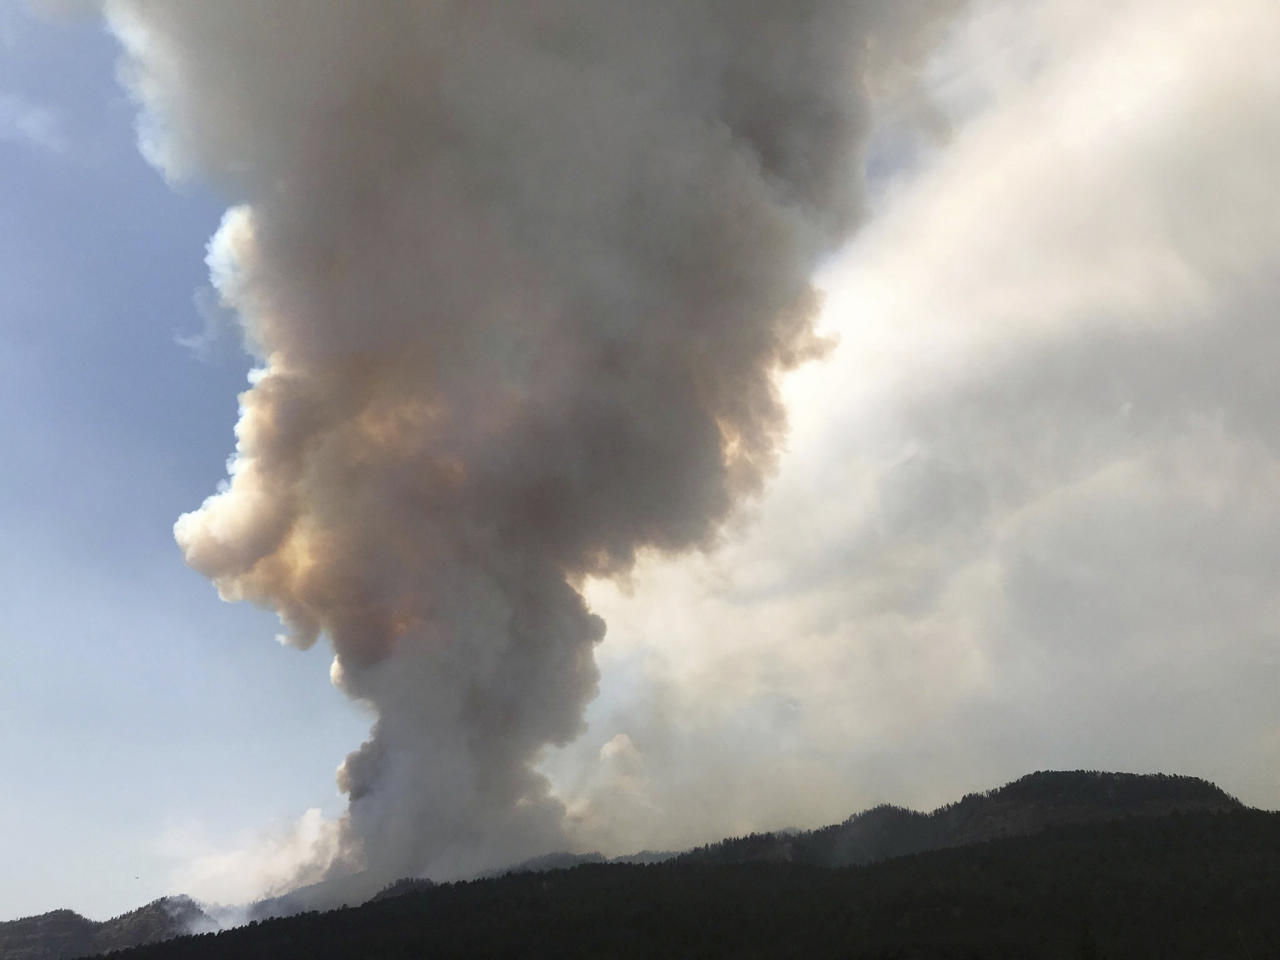 <p>A gigantic plume of smoke rises as the 416 Fire burns near Durango, Colo., Wednesday, June 13, 2018. (Photo: Jerry McBride/The Durango Herald via AP) </p>